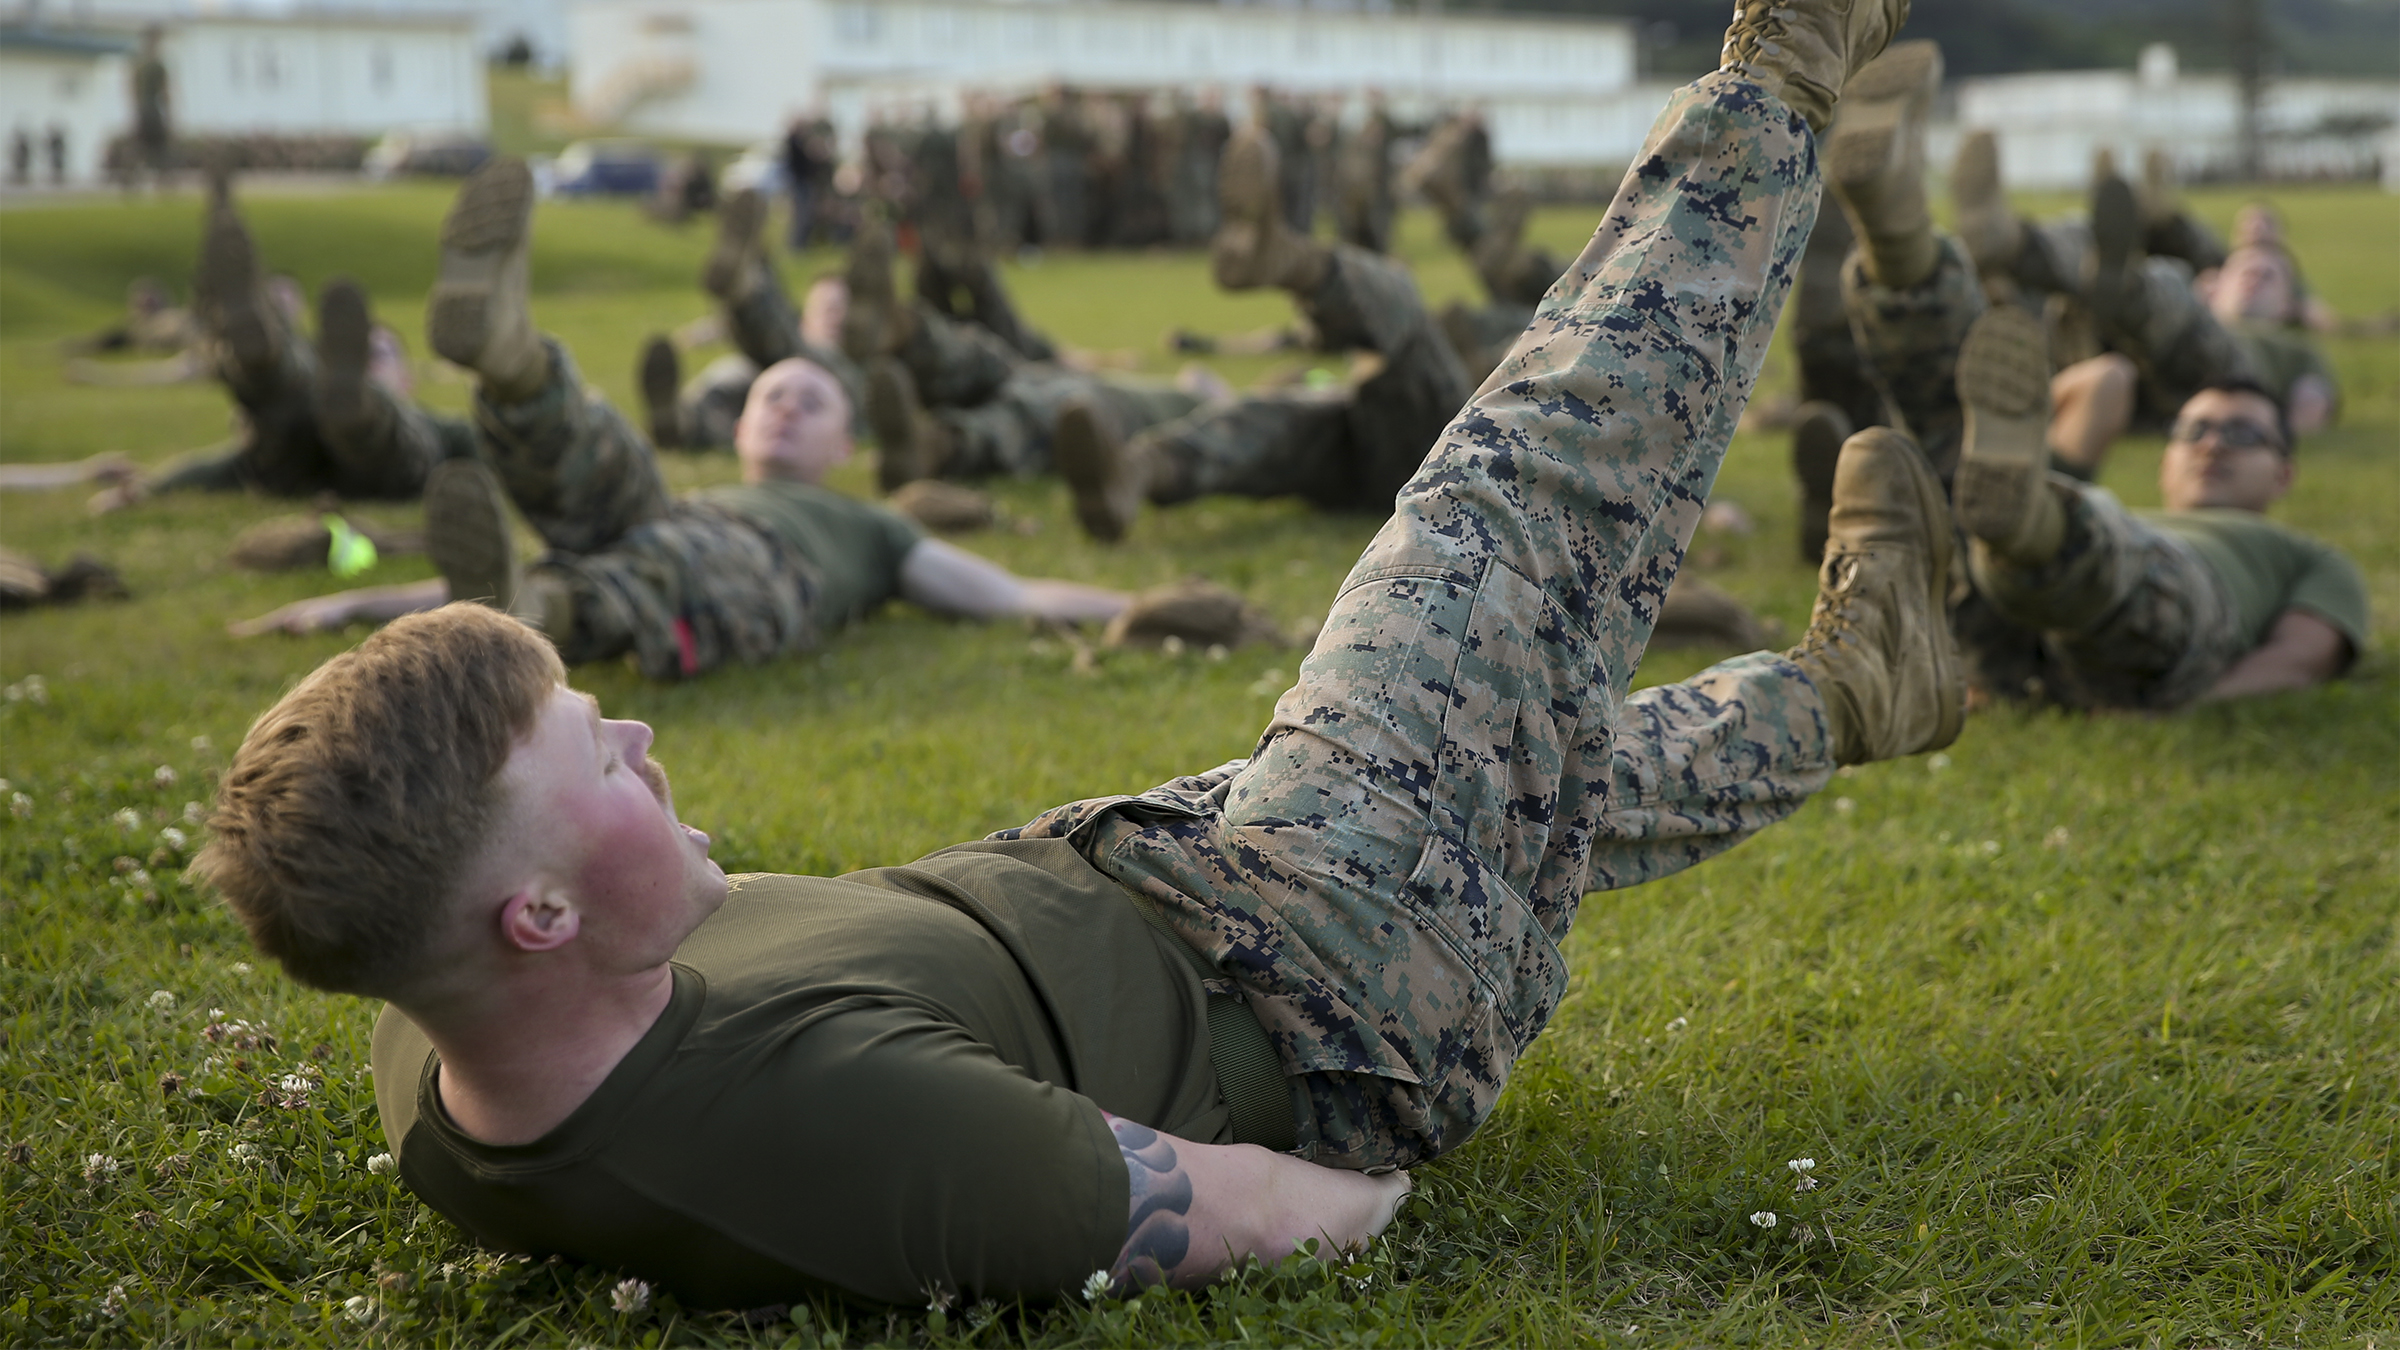 Soldiers working out on grass.